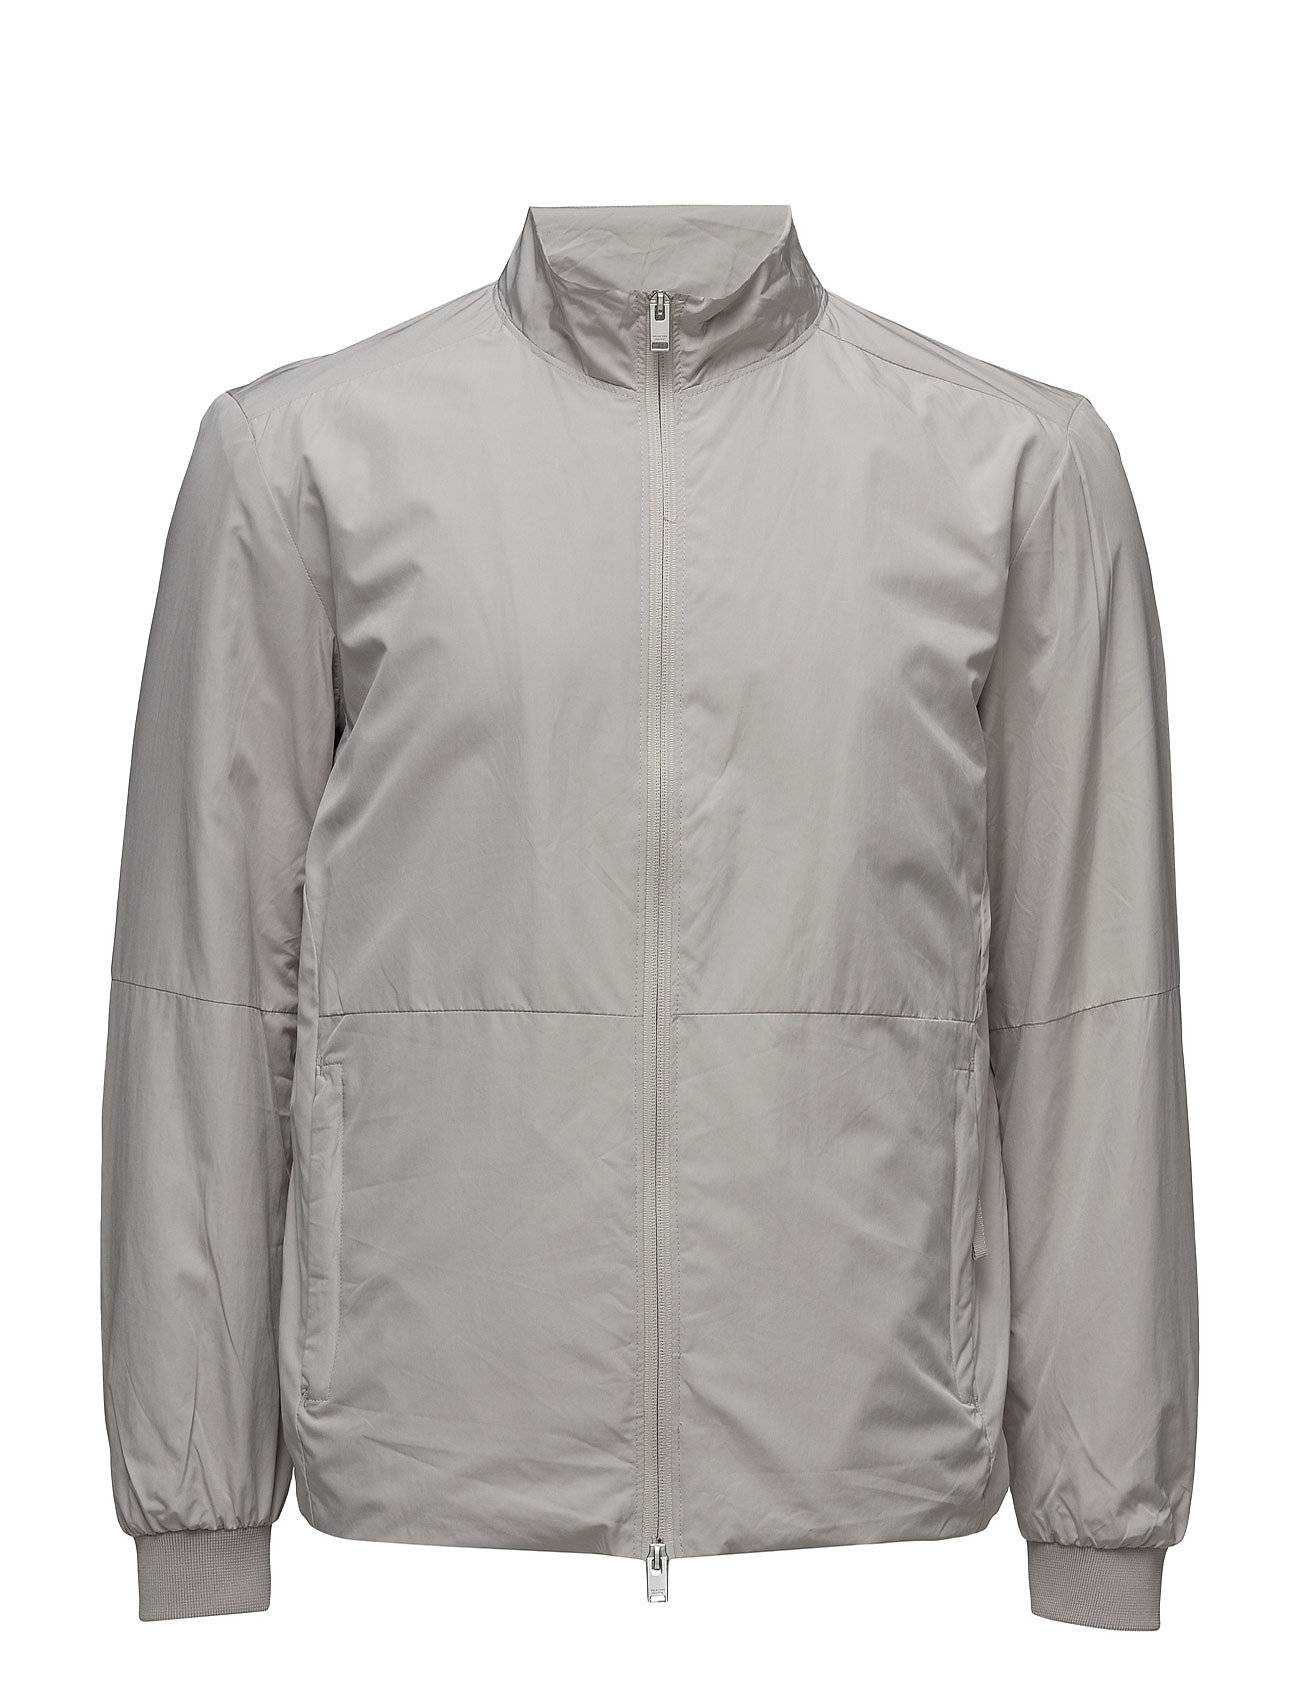 Selected Homme Shded Jacket